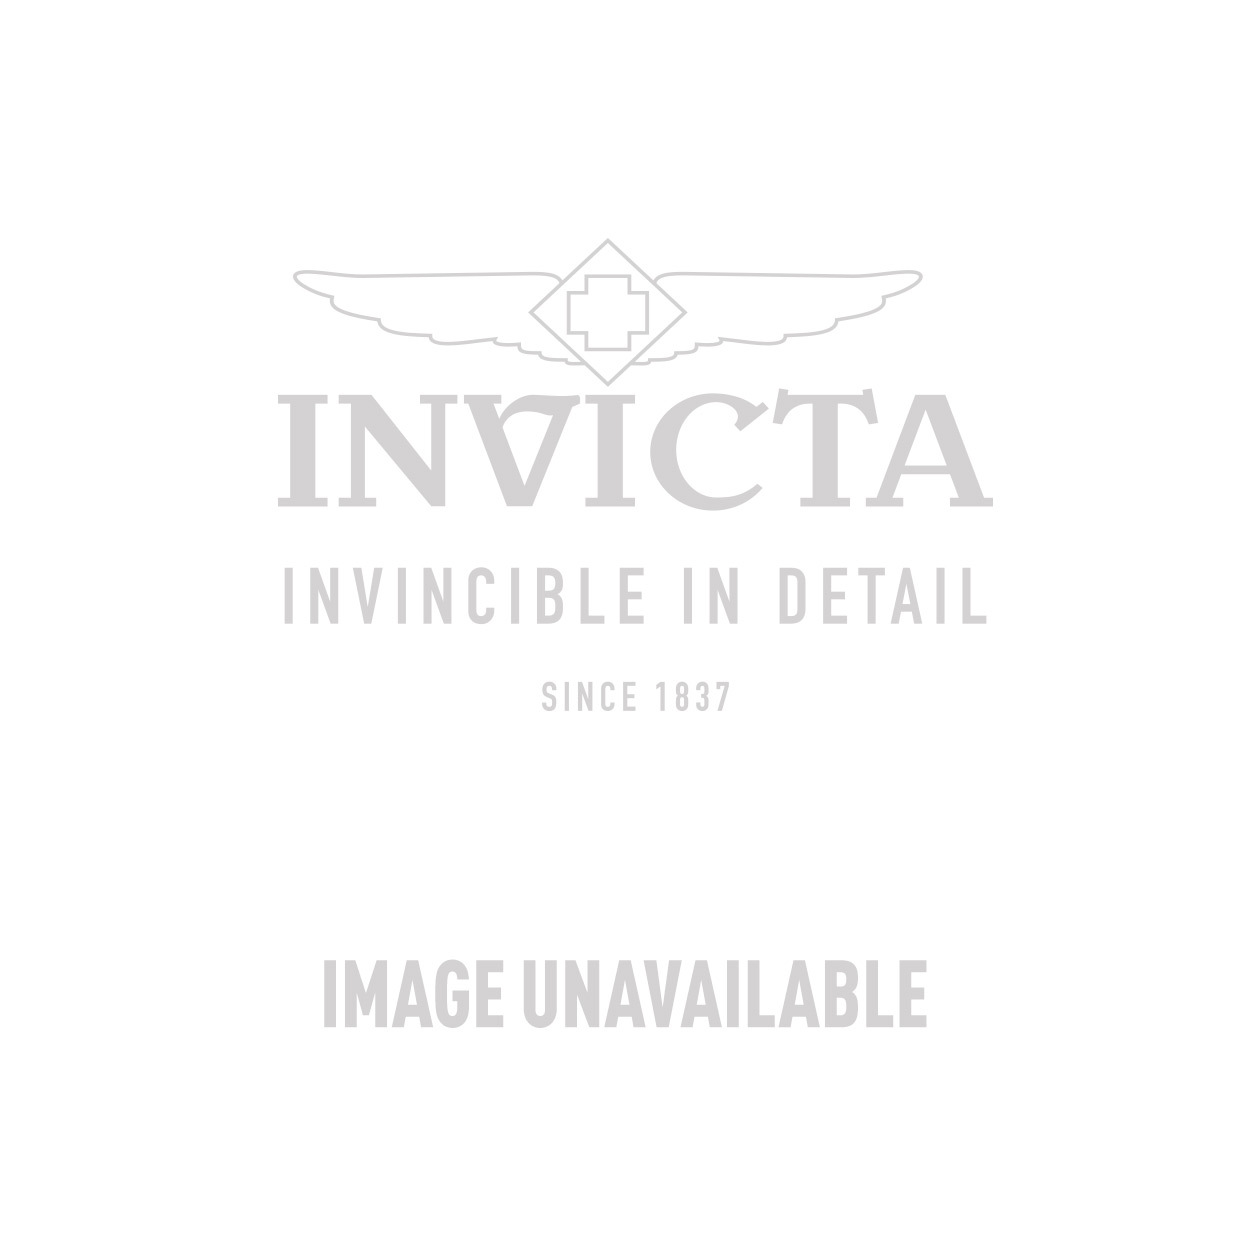 Invicta Sea Base  Quartz Watch - Titanium case with Black tone Polyurethane band - Model 17544